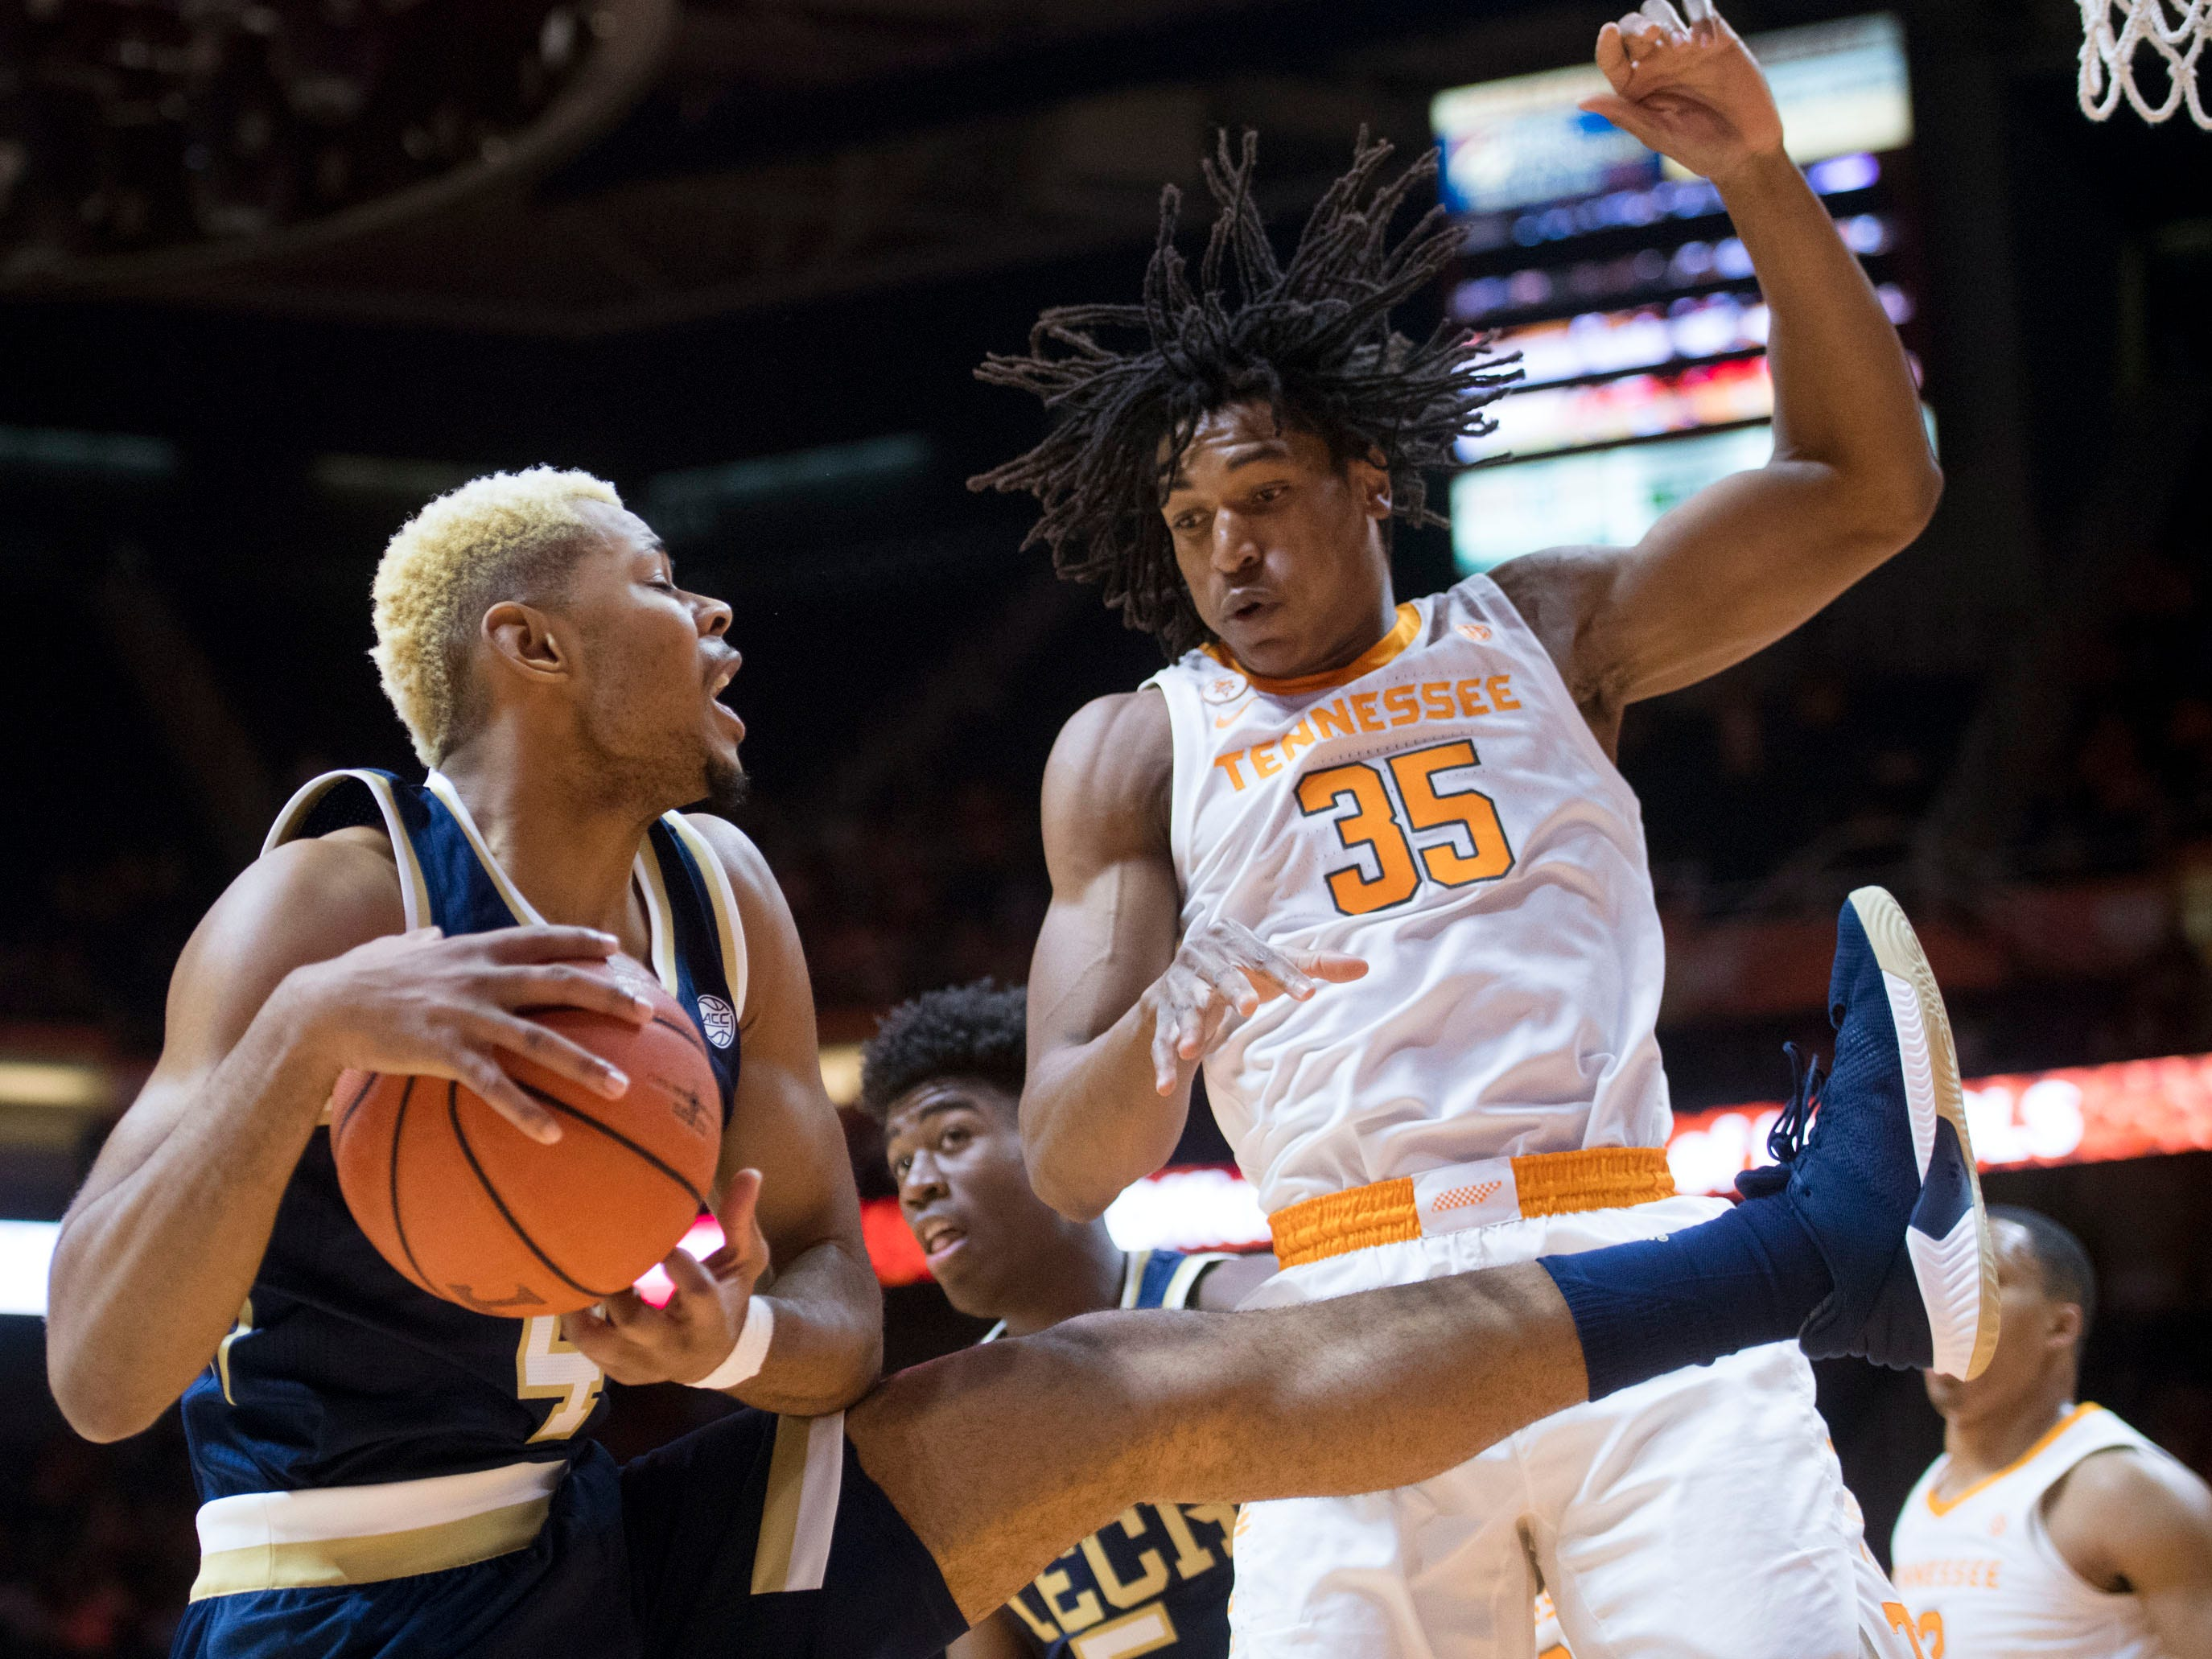 Georgia Tech's Brandon Alston (4) gets the rebound over Tennessee's Yves Pons (35) on Tuesday, November 13, 2018.